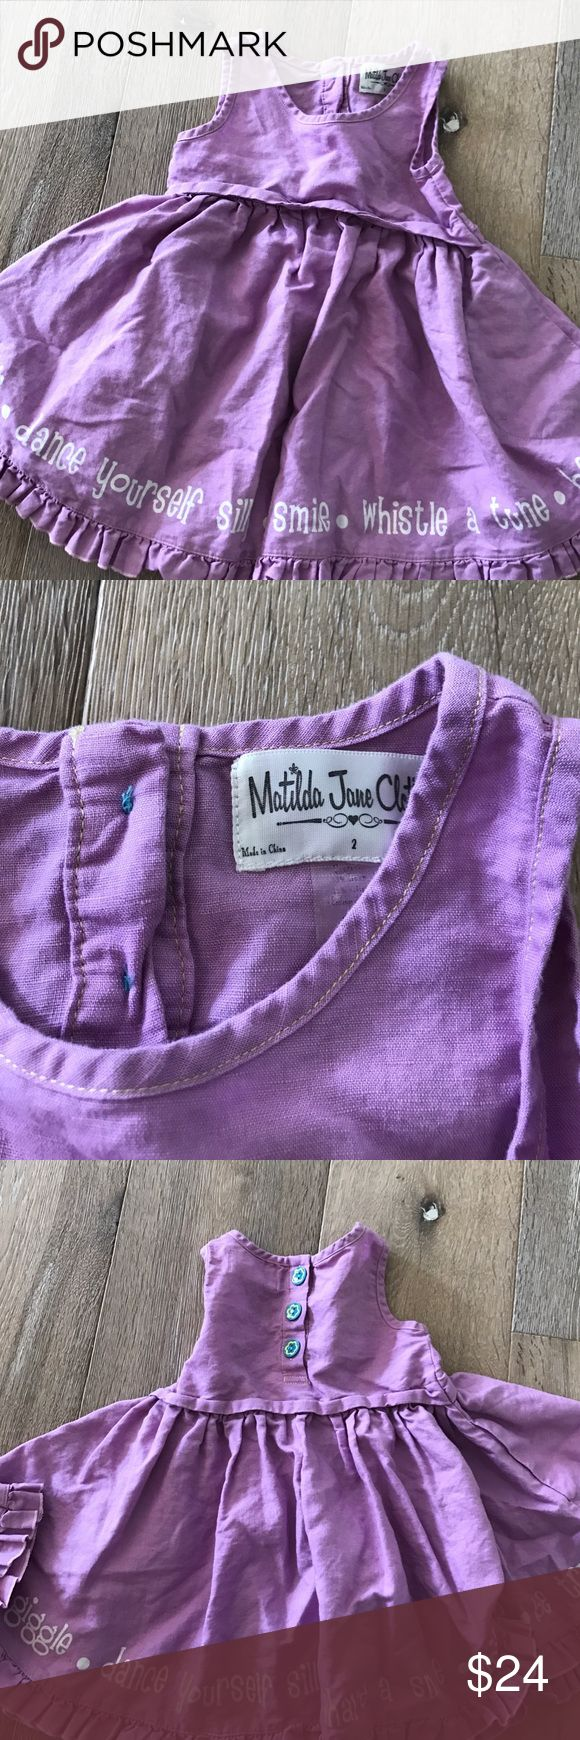 Matilda Jane dress Linen lavender whimsical dress Matilda Jane Dresses Casual